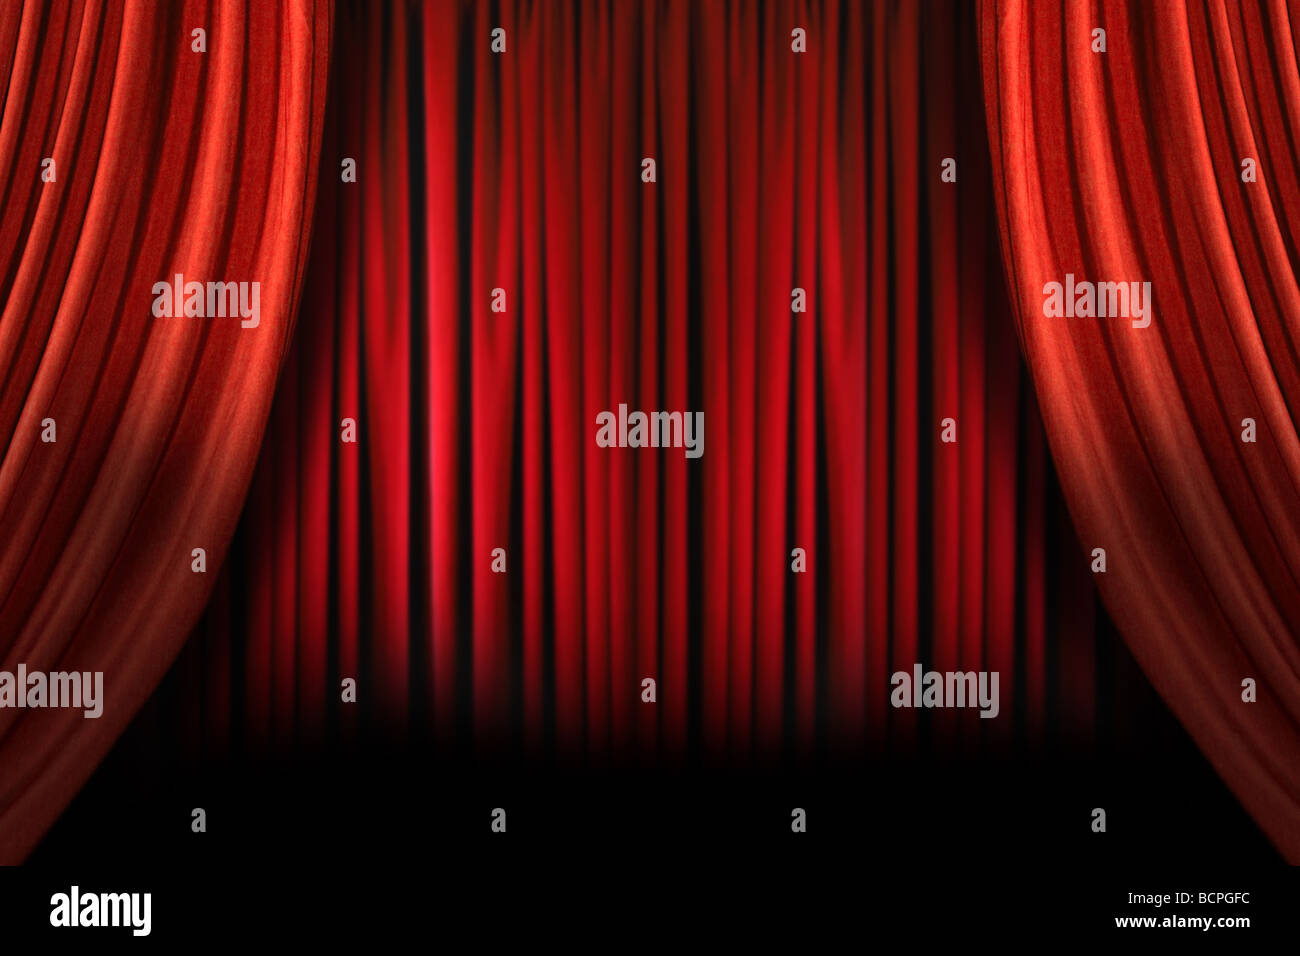 Old fashioned elegant theater stage with swag velvet curtains - Stock Image